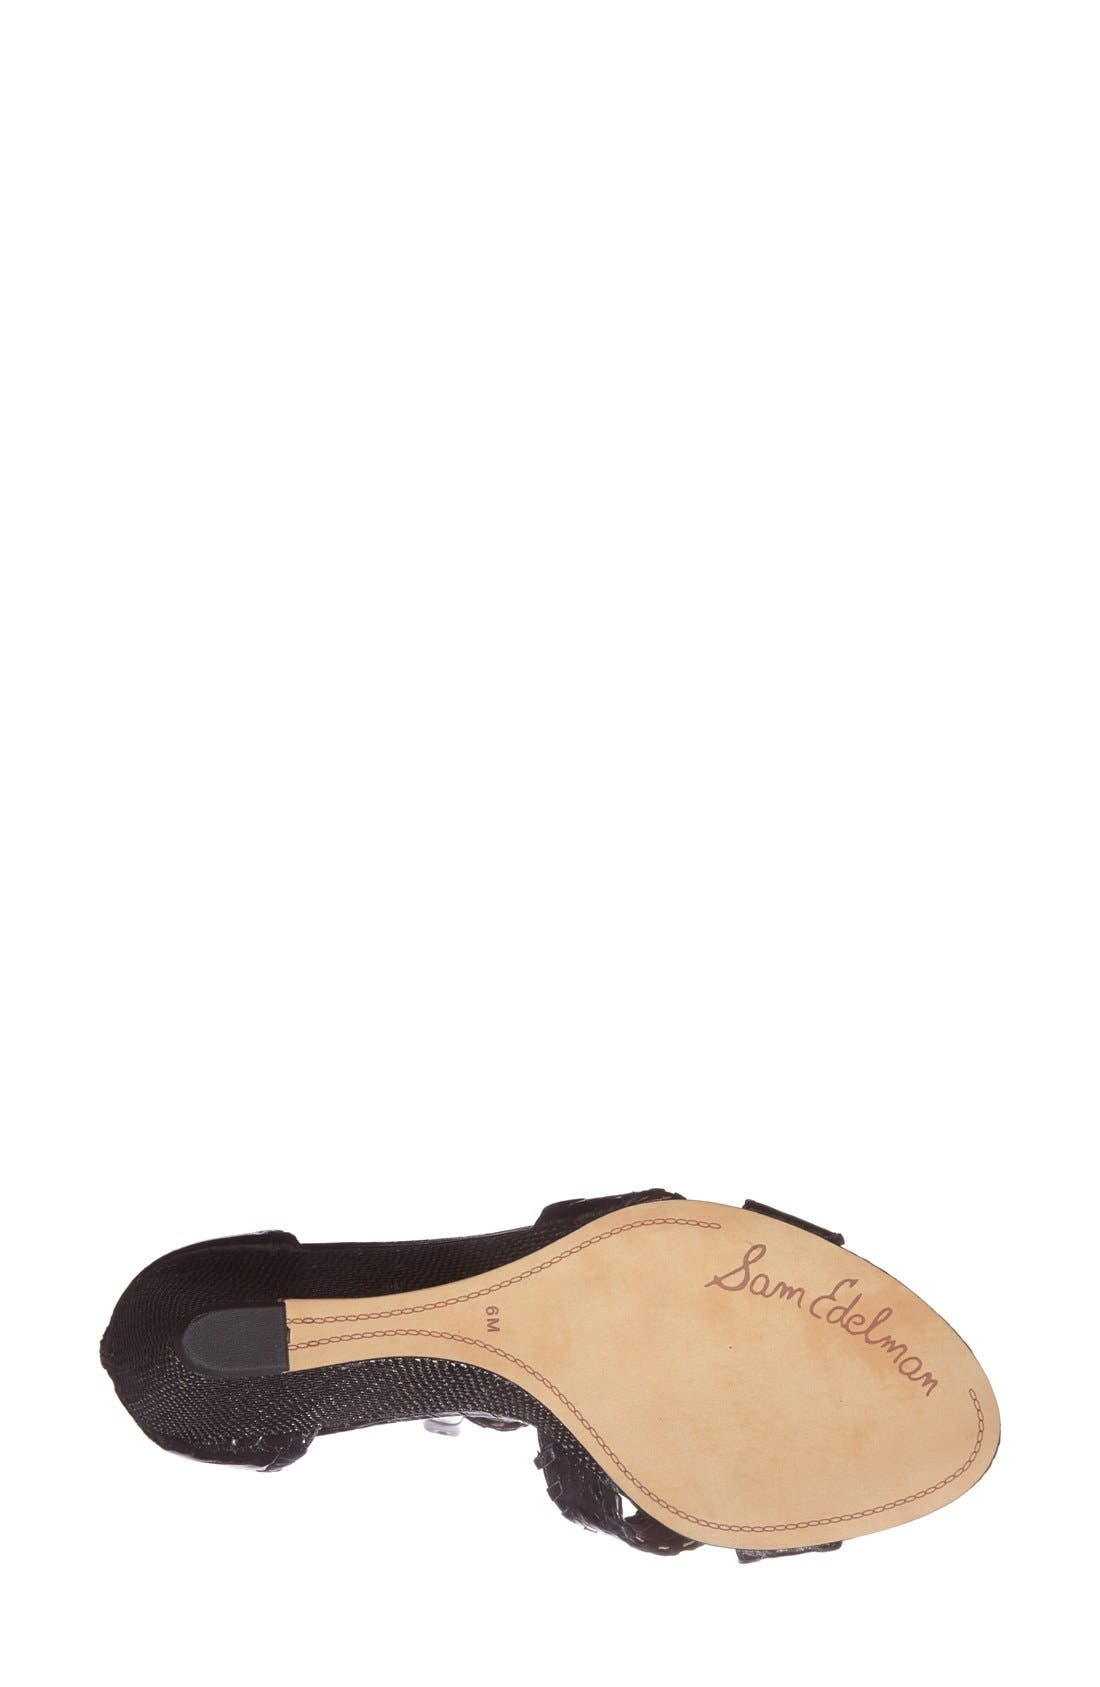 Alternate Image 4  - Sam Edelman 'Silvia' Ankle Strap Wedge Sandal (Women)